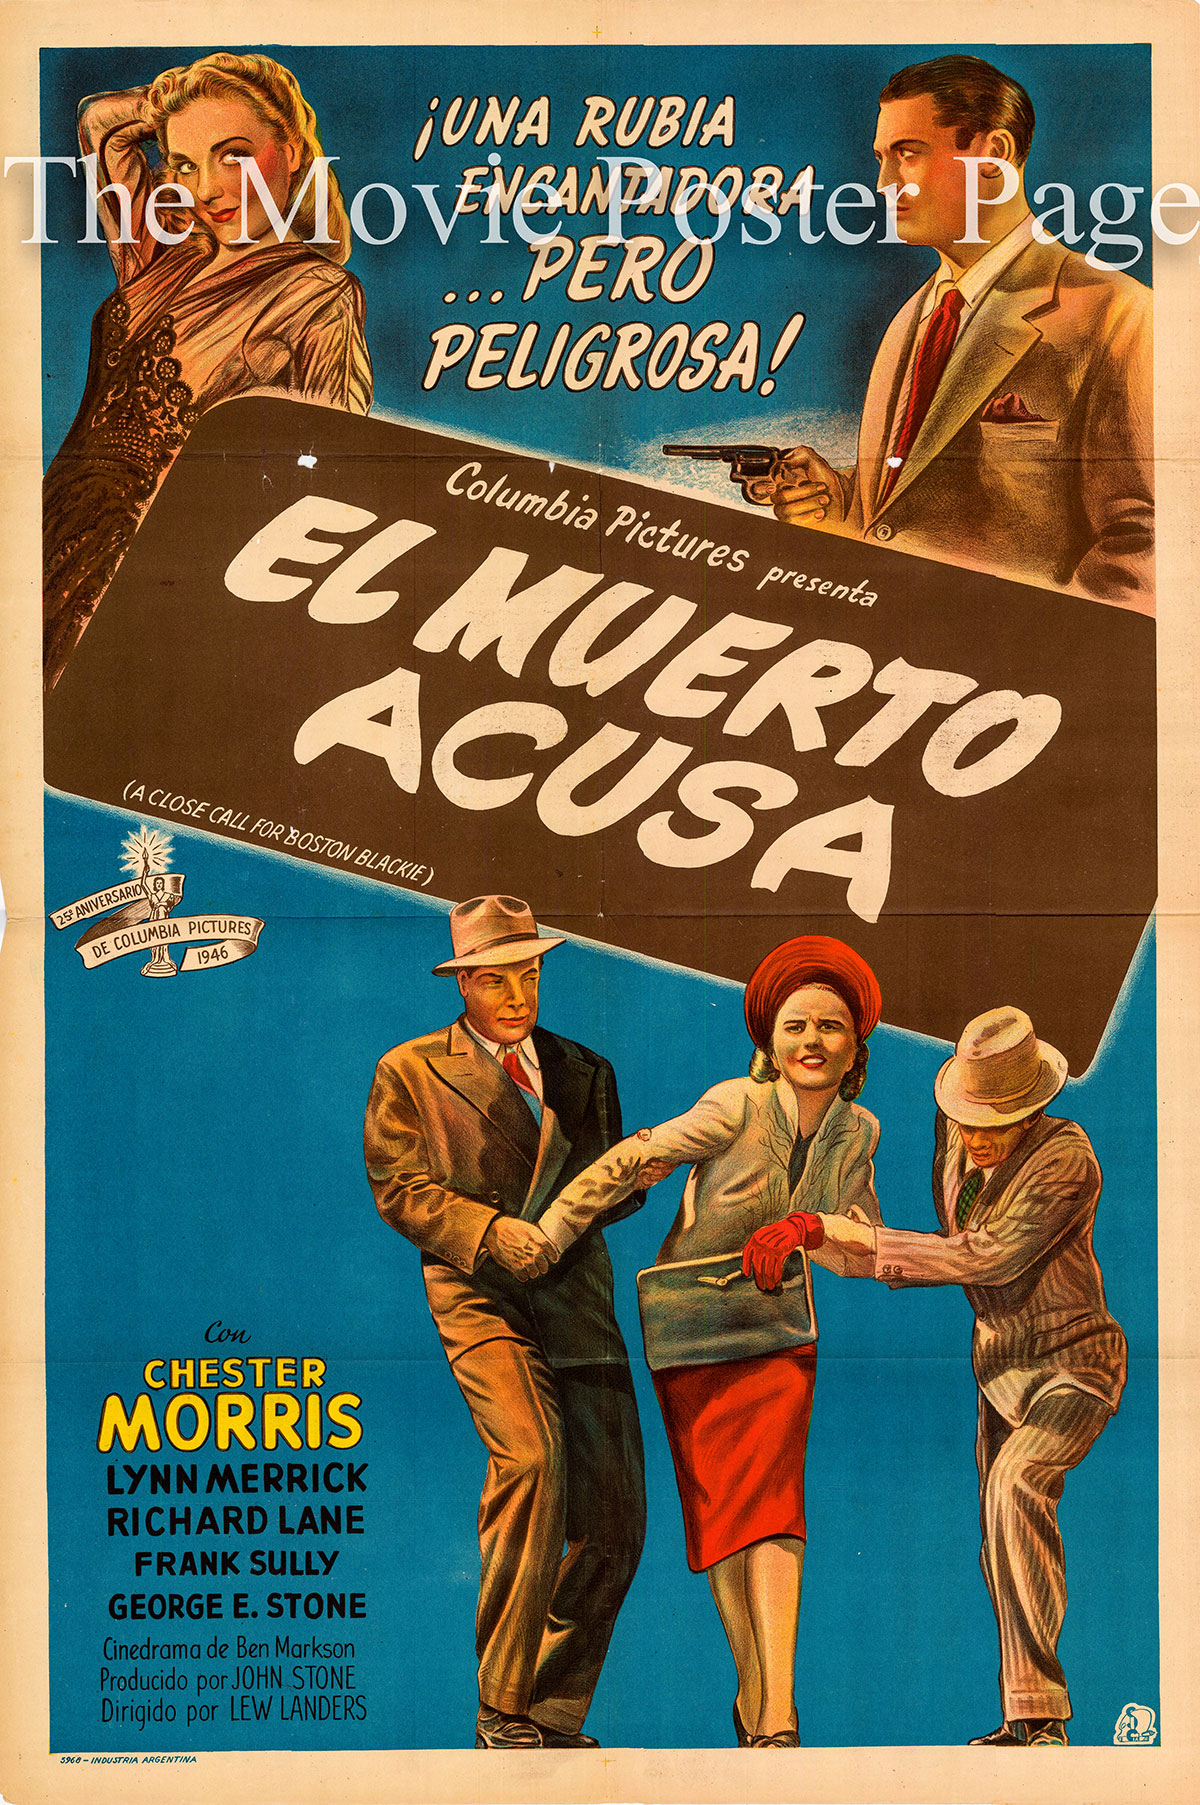 Pictured is an Argentine poster for the 1946 Lew Landers film <i>A Close Call for Boston Blackie</i> starring Chester Morris as Boston Blackie.